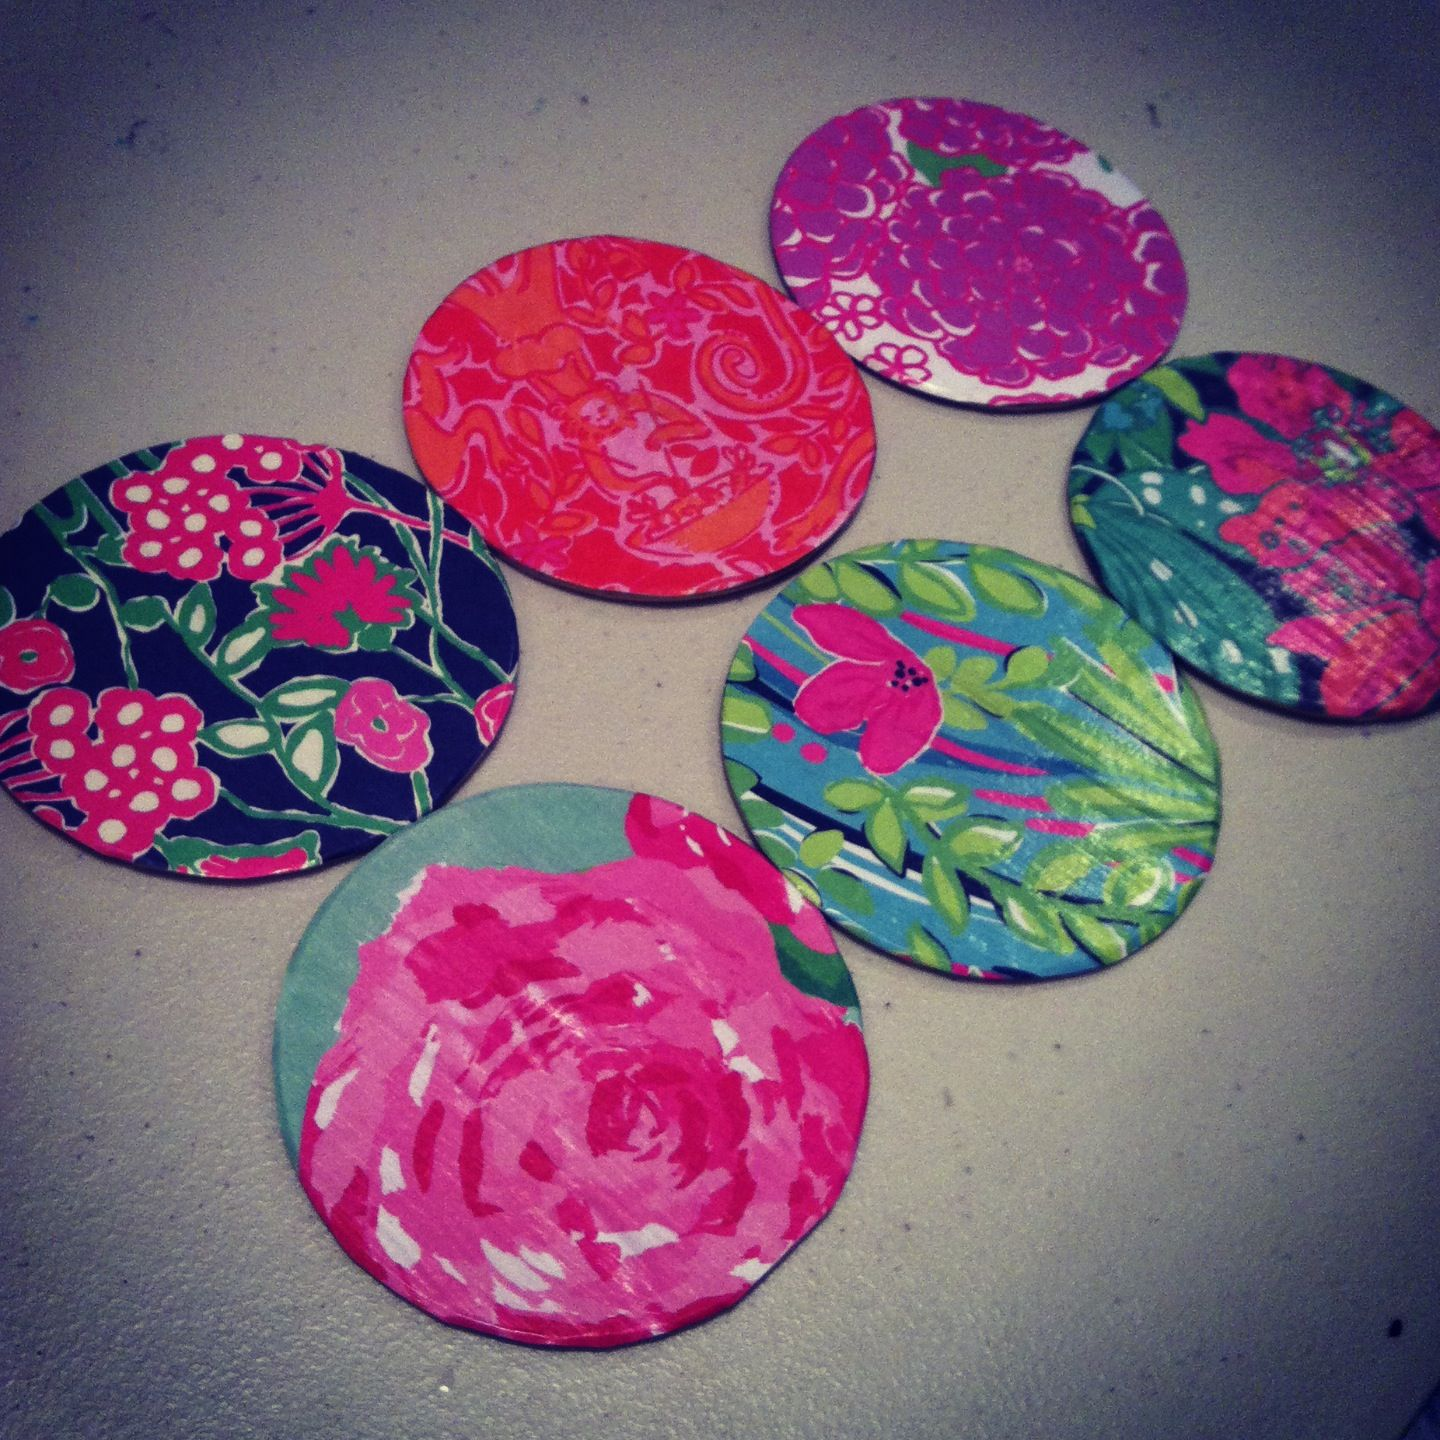 diy lilly pulitzer coasters for the dorm just modge podge old diy lilly pulitzer coasters for the dorm just modge podge old lilly agenda pages onto